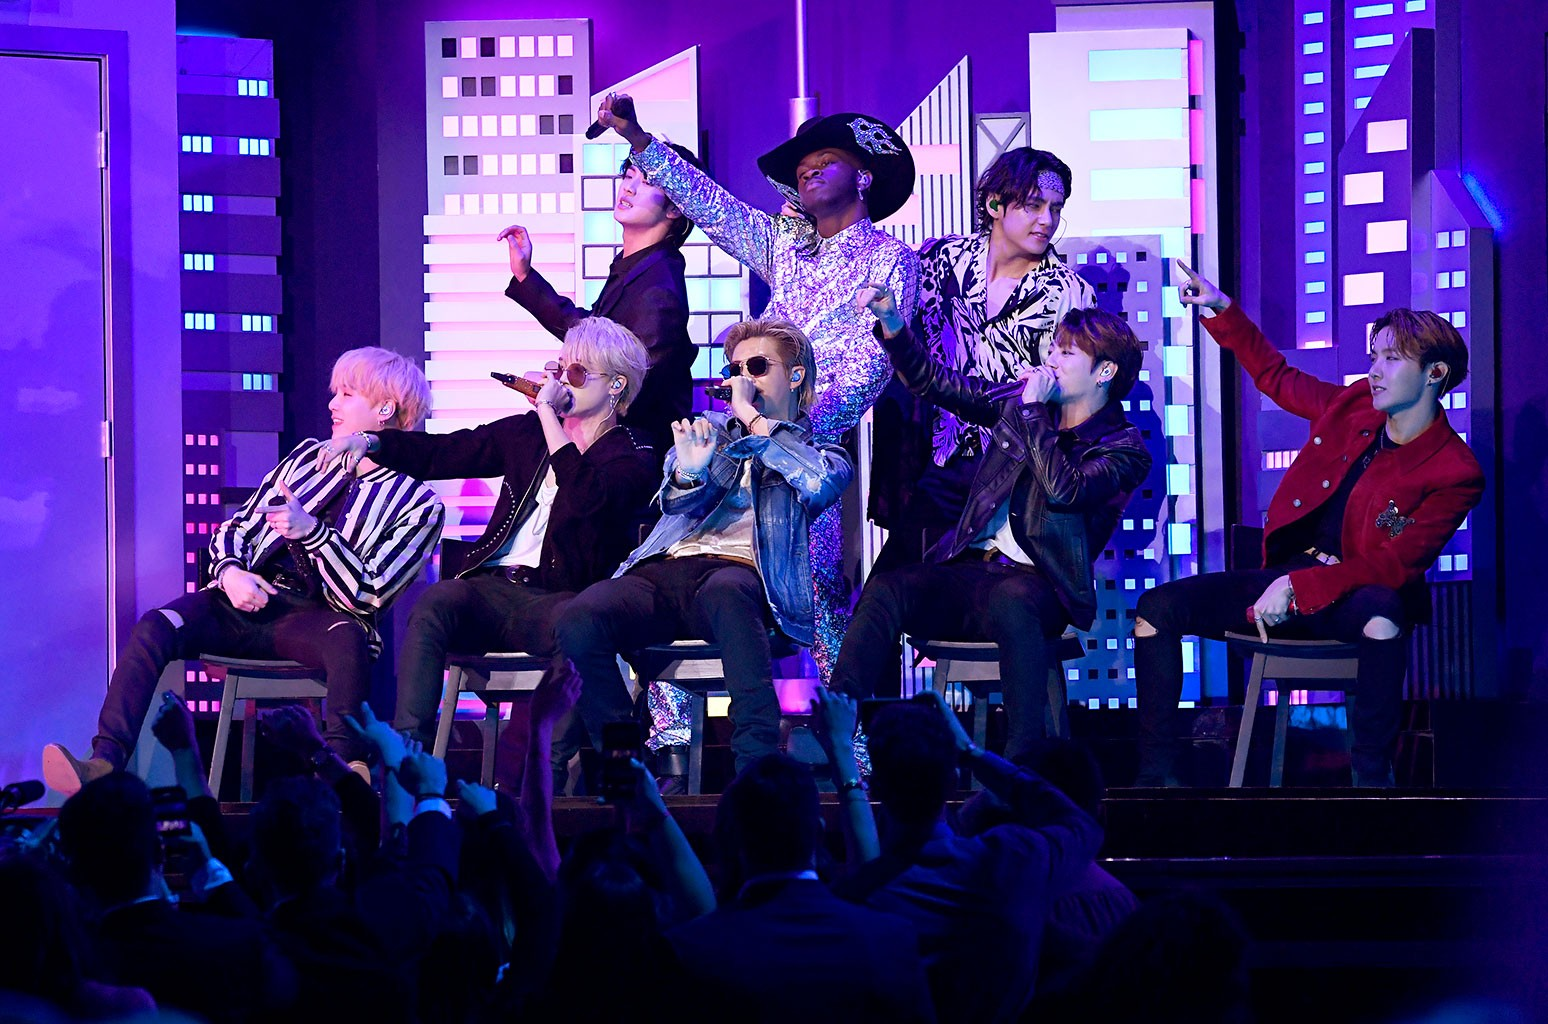 Lil Nas X Very Excited About BTS' Upcoming Album | Billboard | Billboard